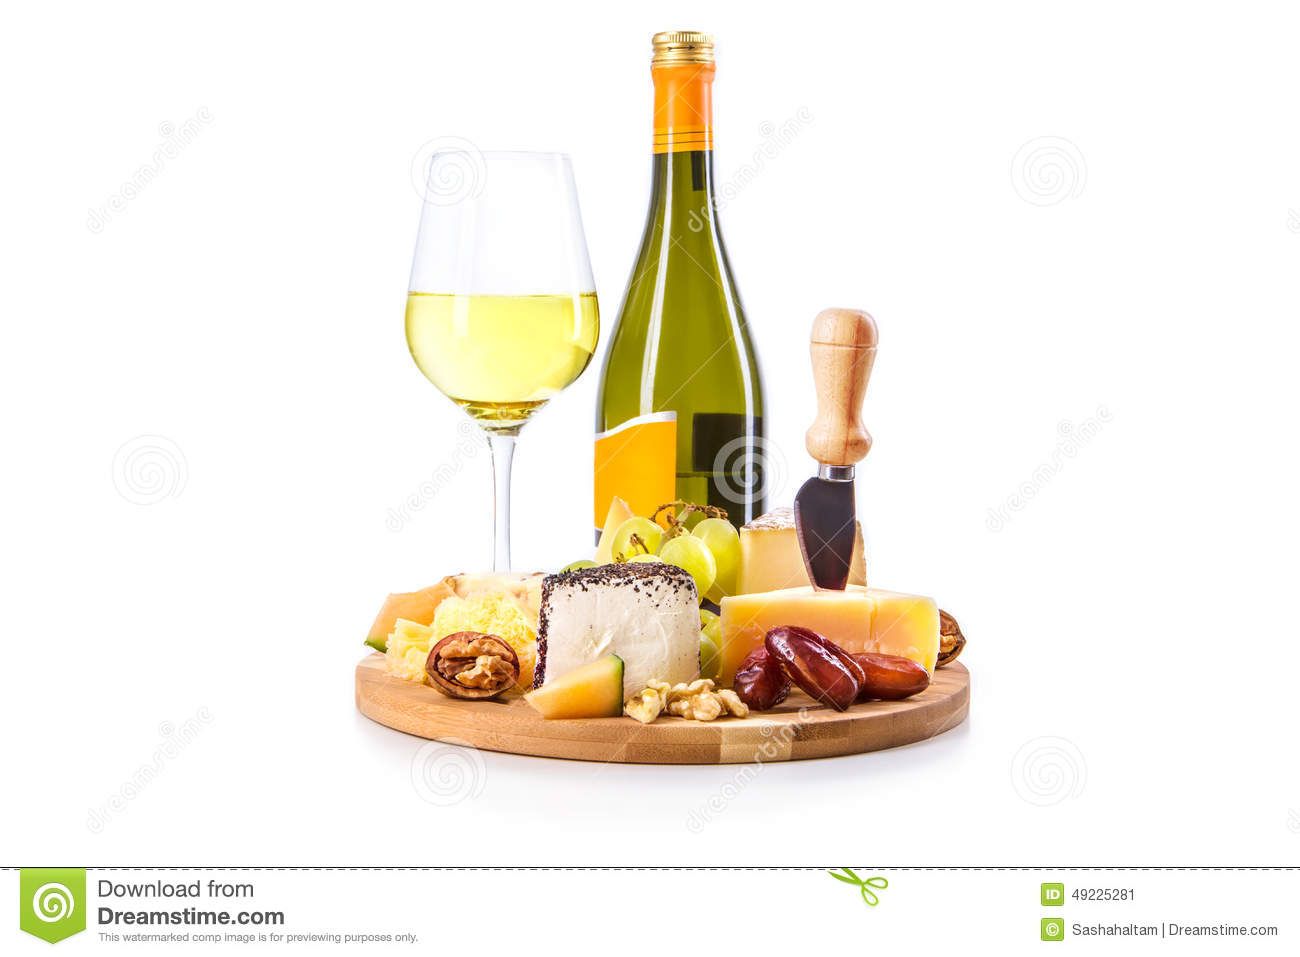 Bottle and glass of white wine with cheese plate  sc 1 st  Dreamstime.com & Bottle And Glass Of White Wine With Cheese Plate Stock Image ...